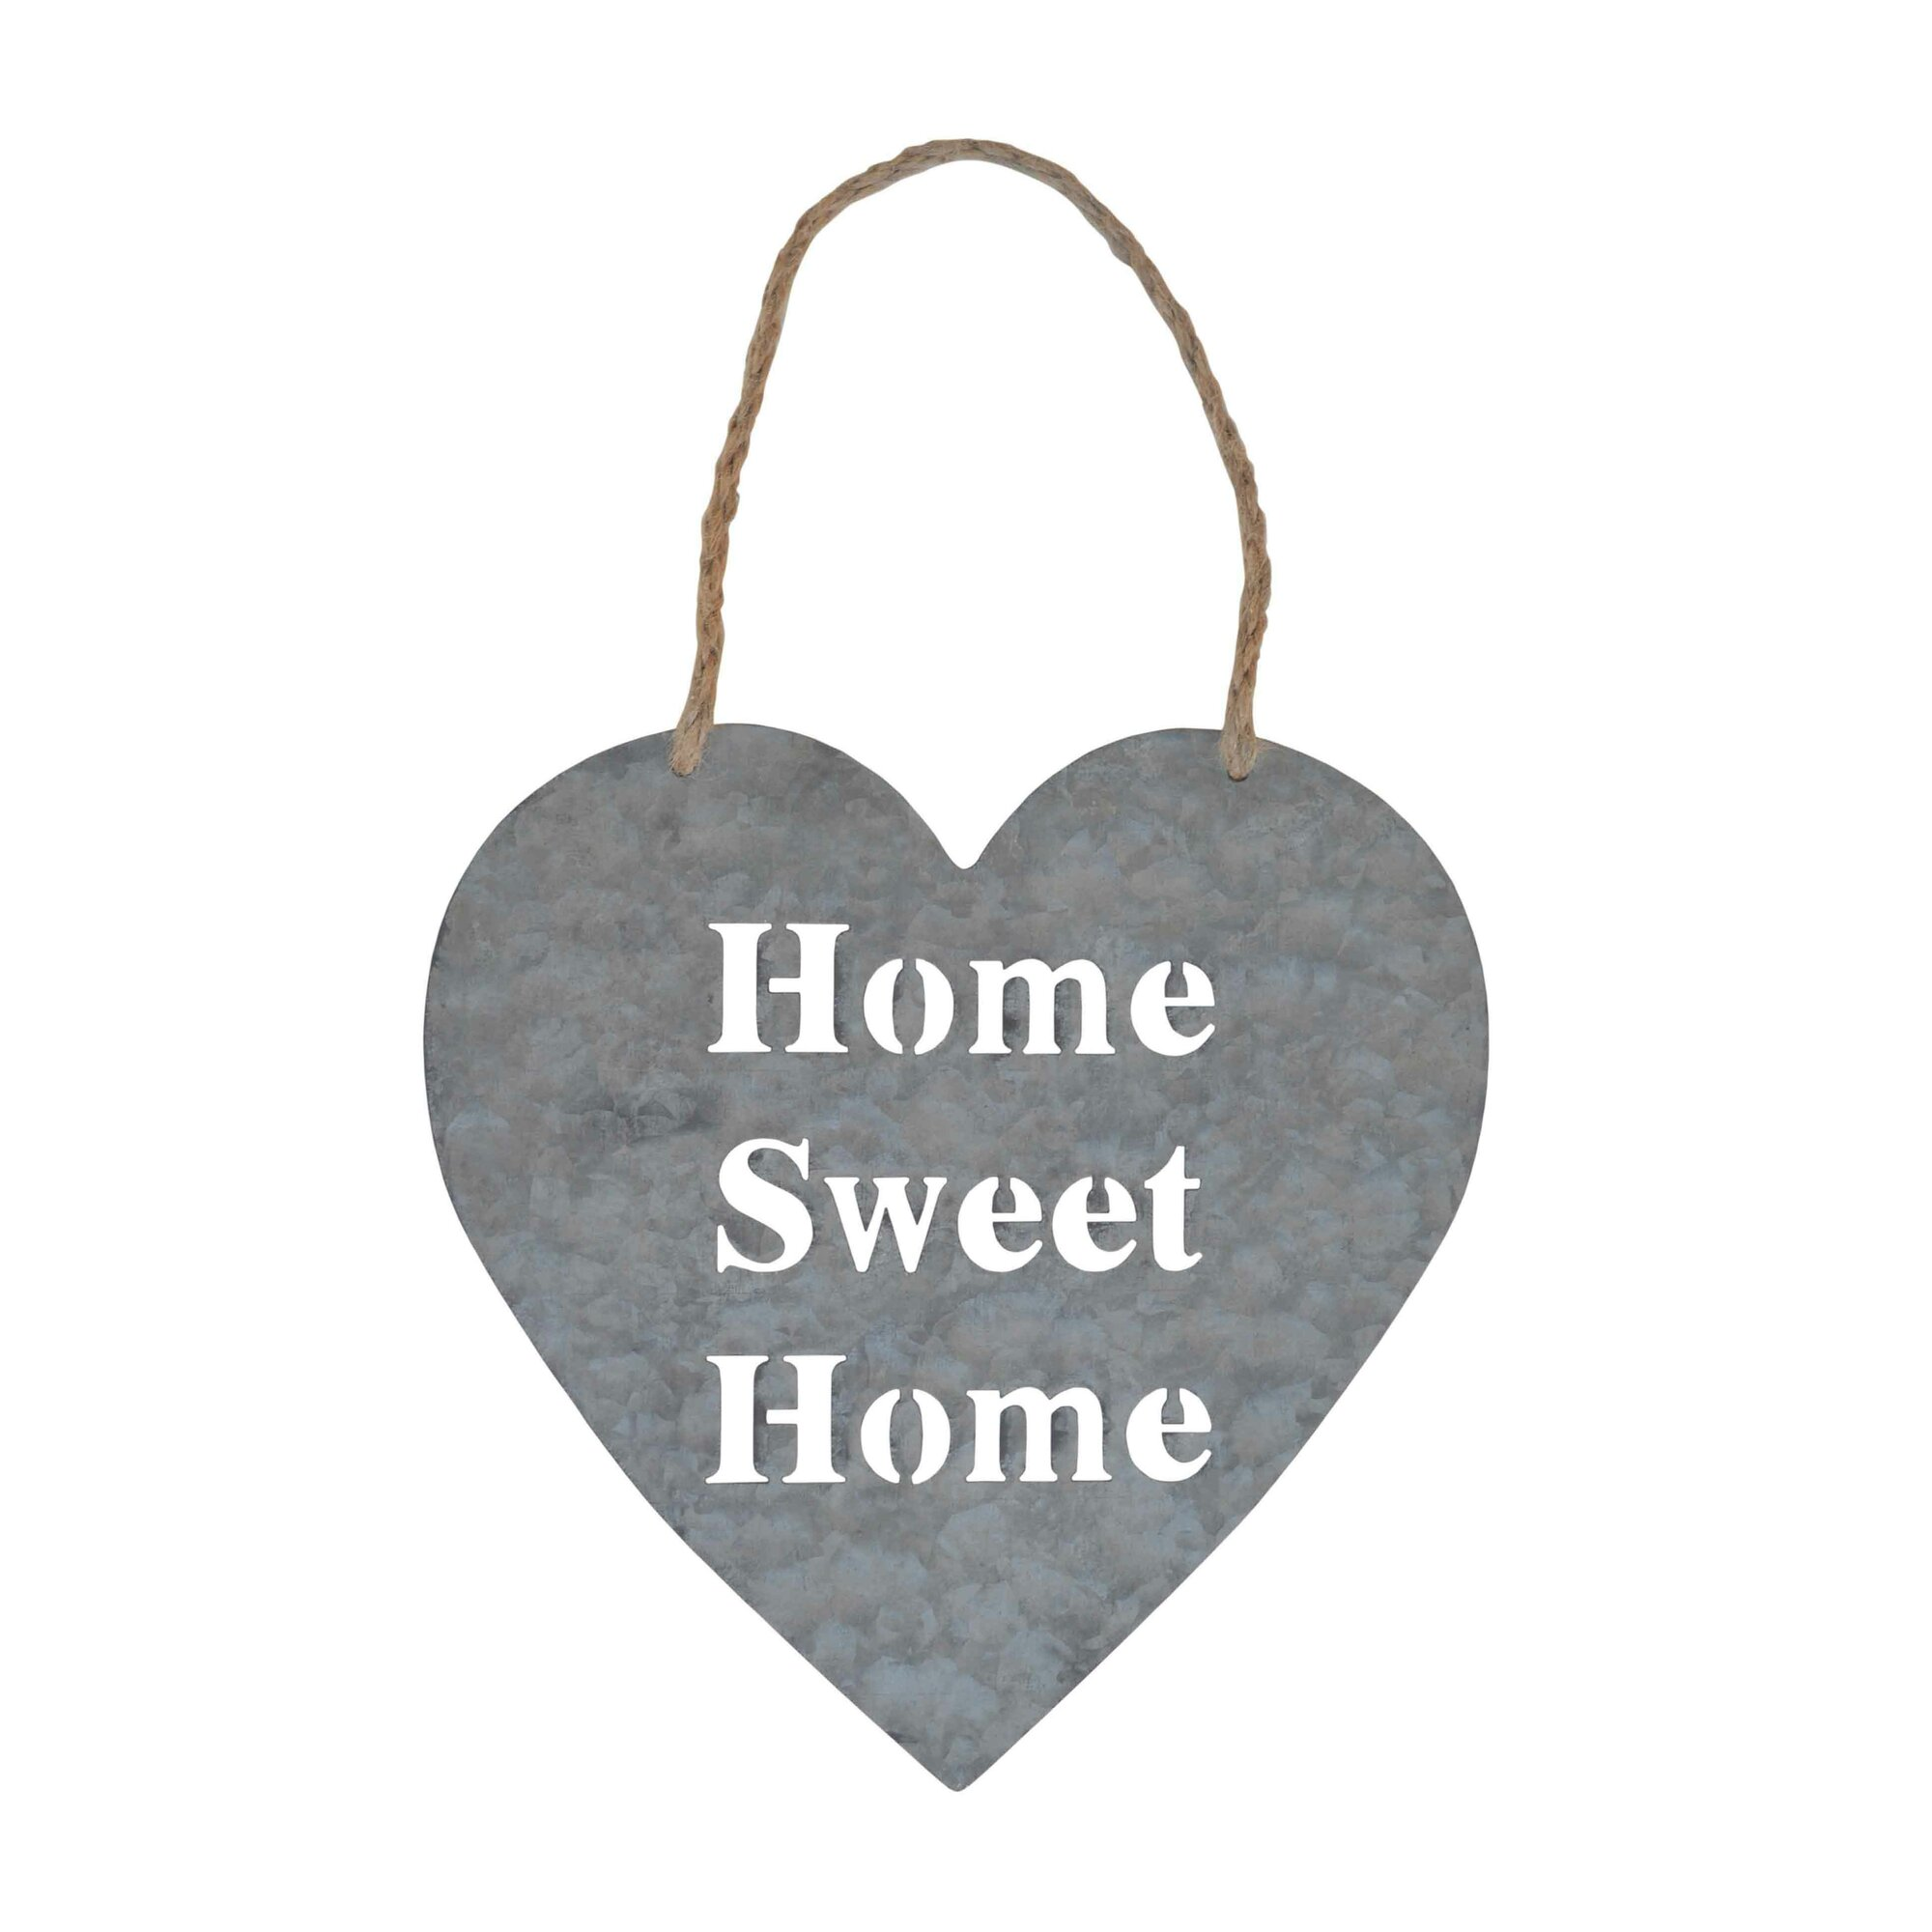 Cheungs 39 home sweet home 39 heart shaped metal wall sign for Heart shaped decorations home